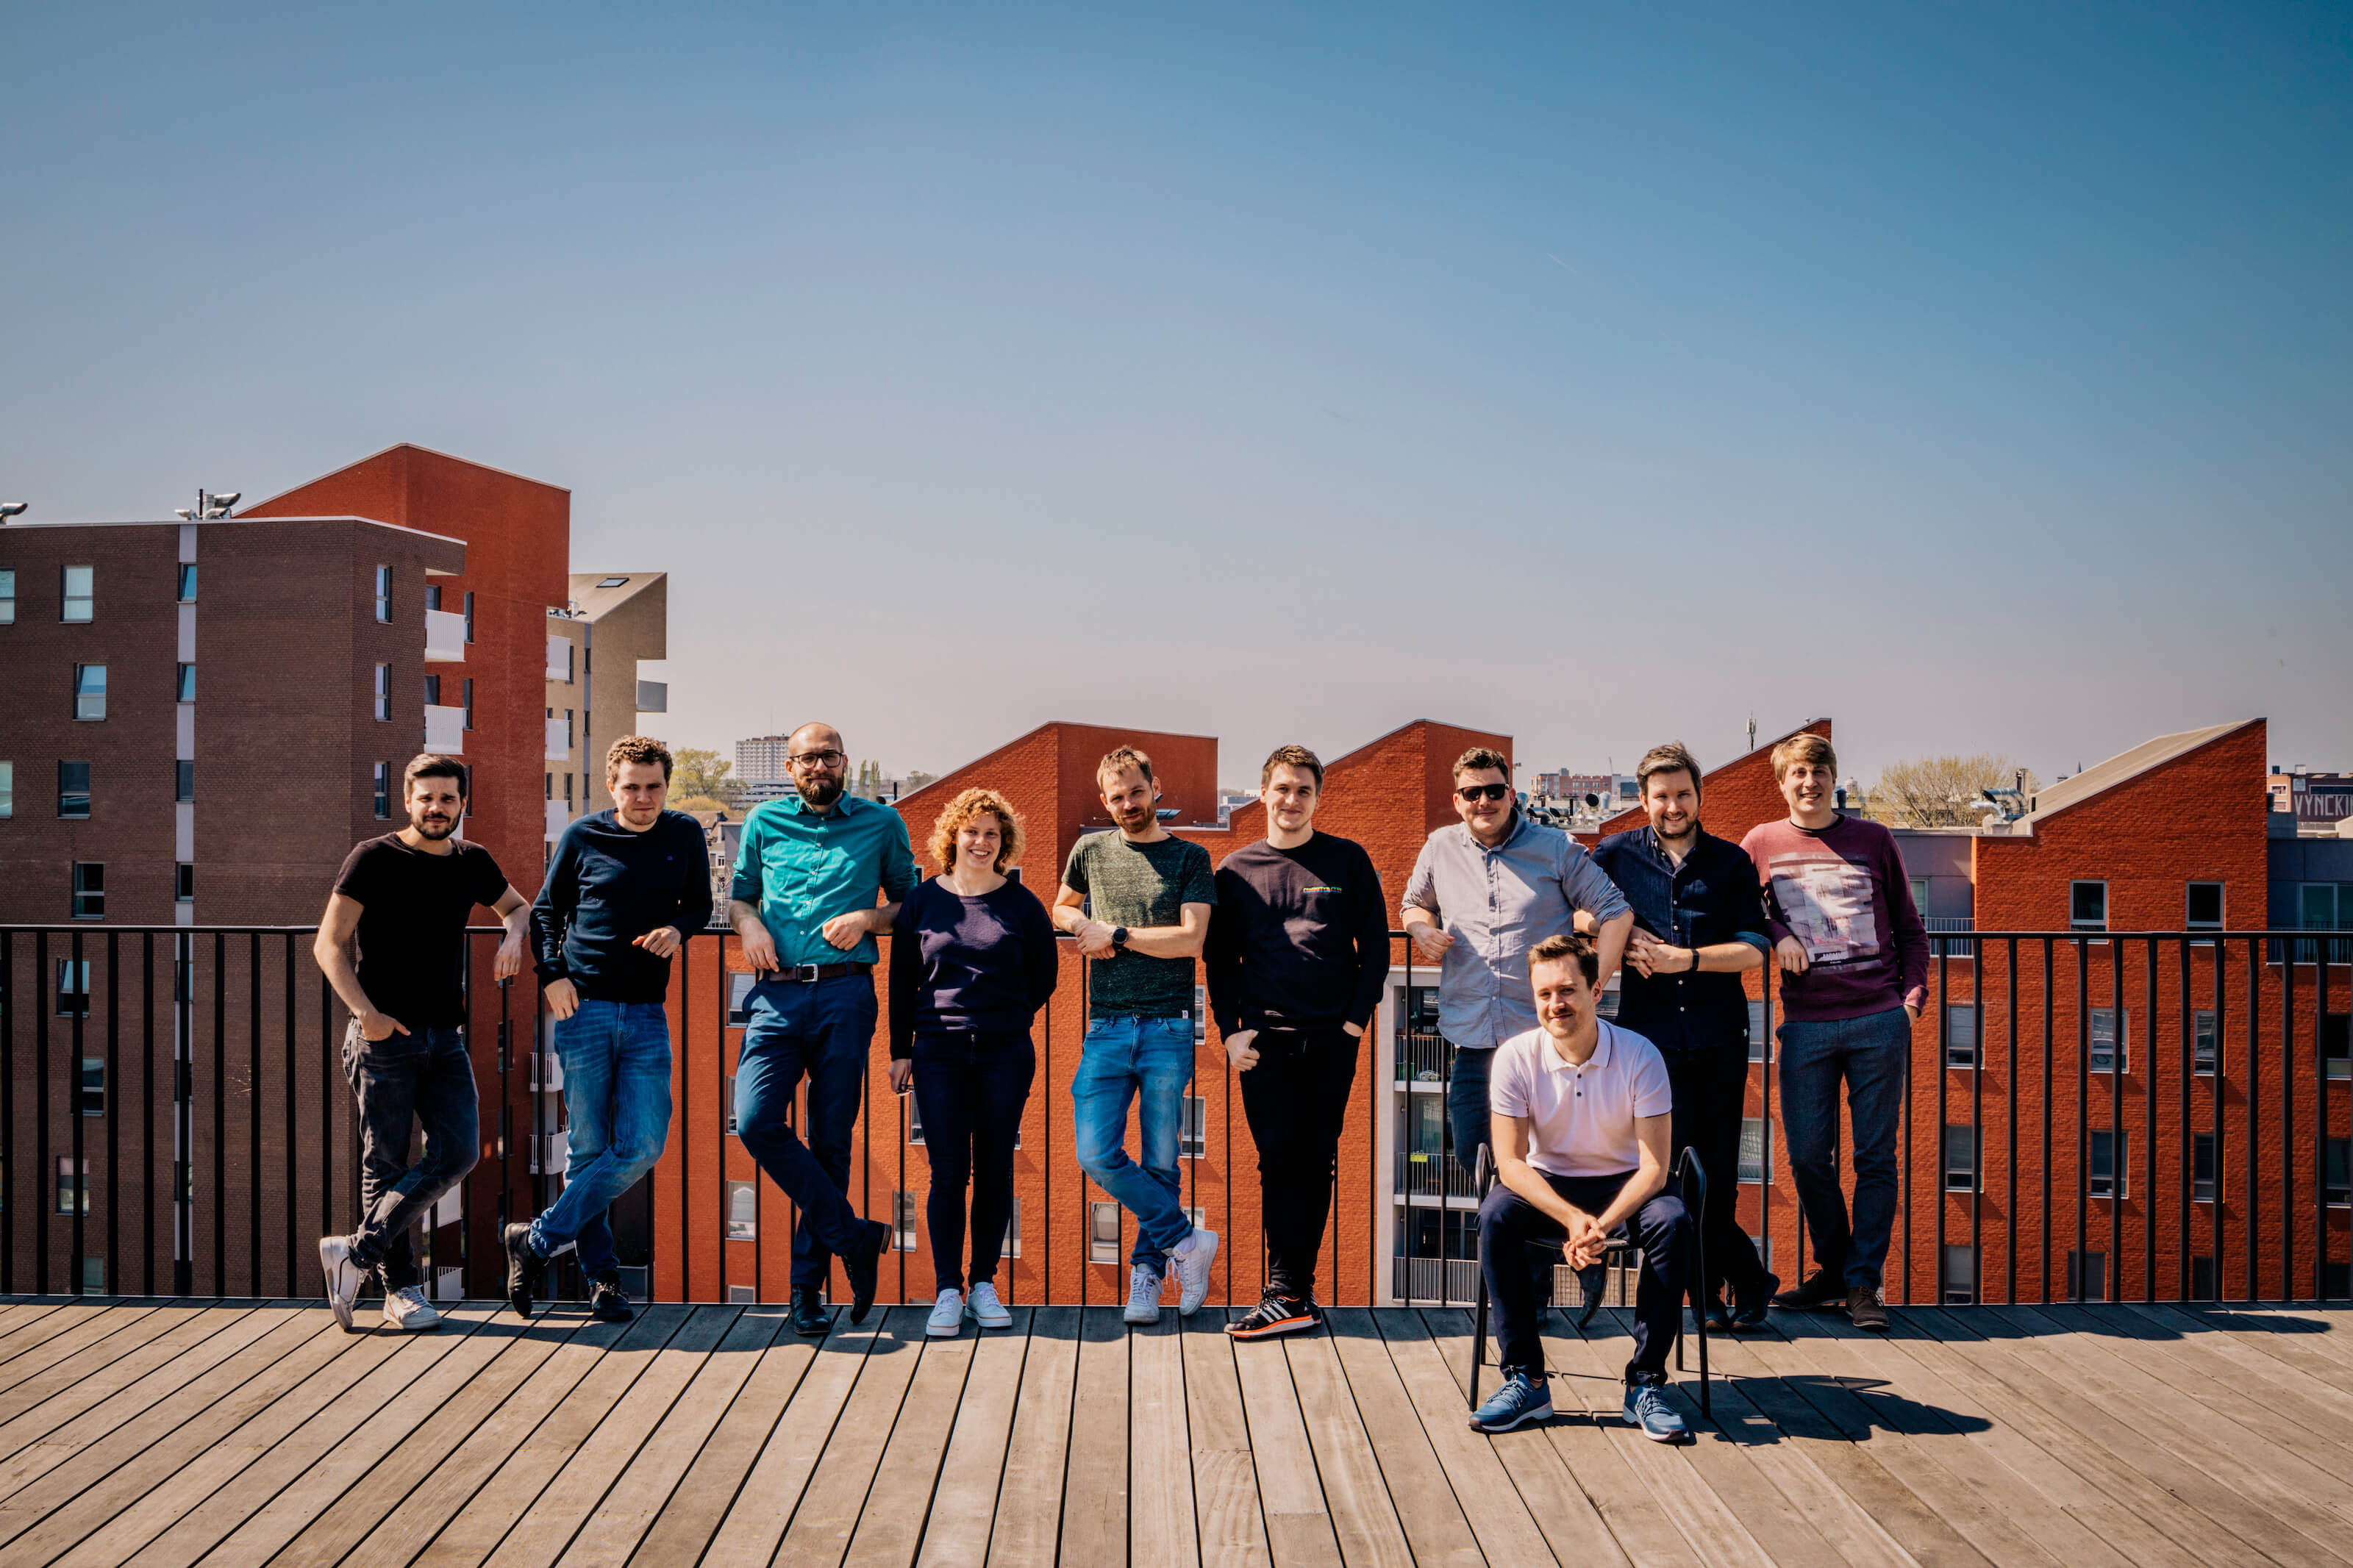 The In The Pocket Design System team on the terrace